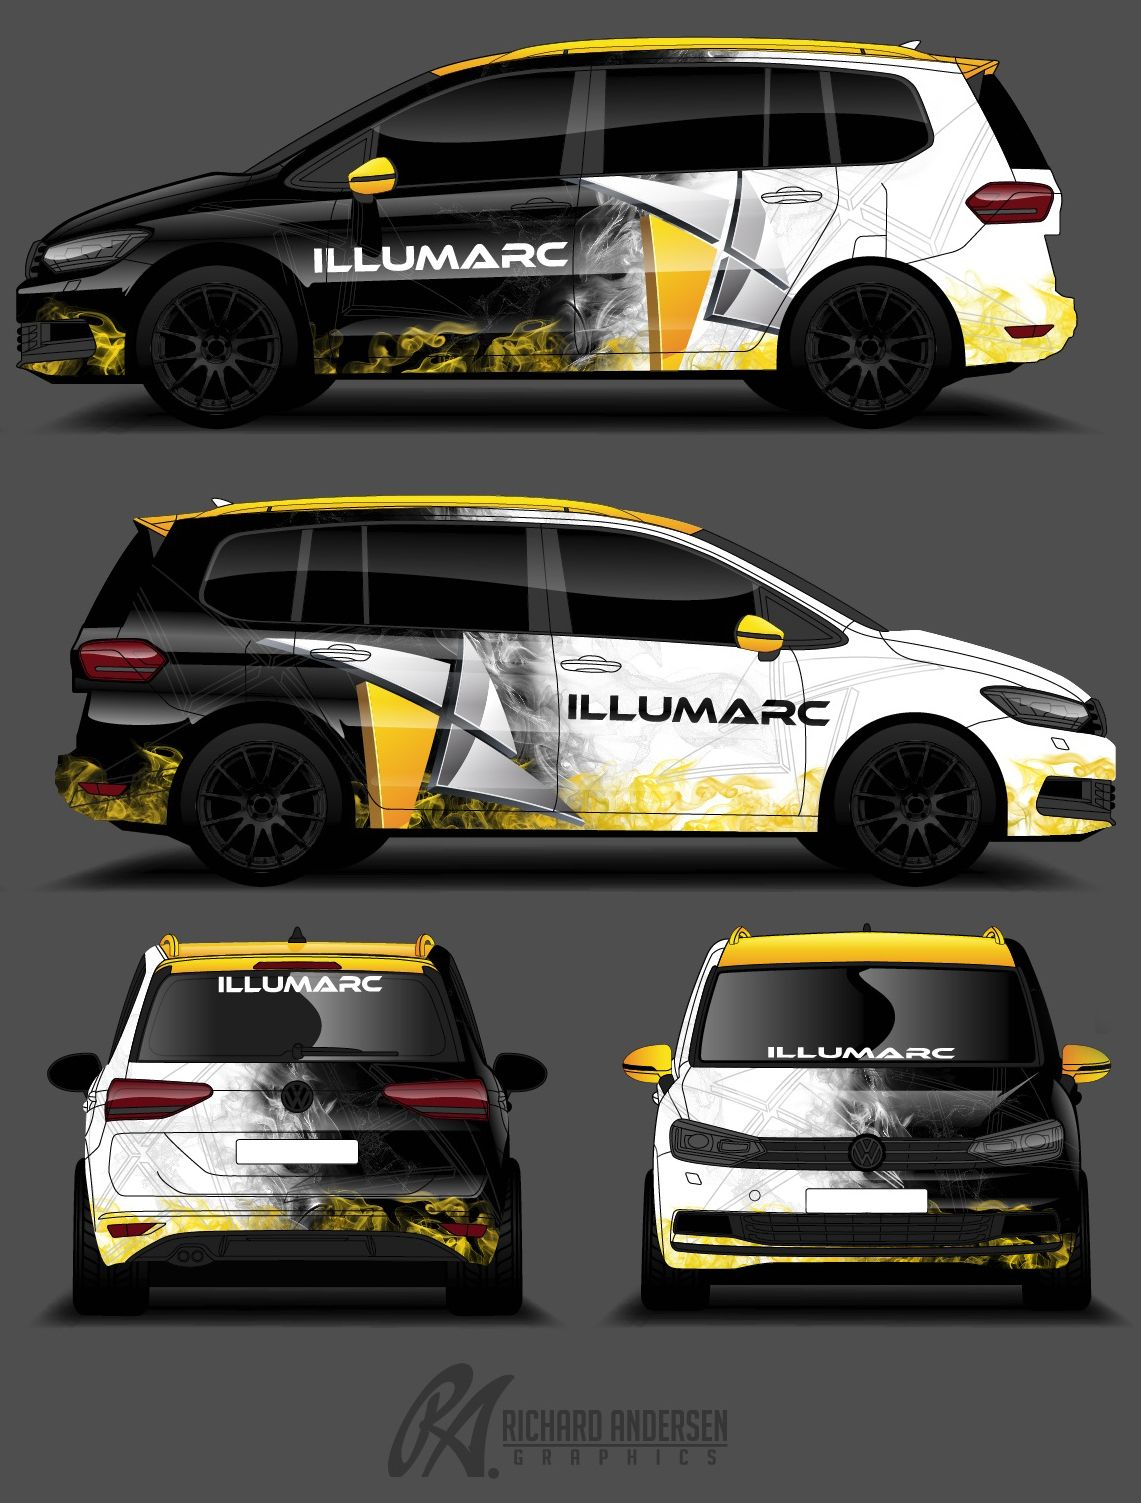 Renault clio racing livery we collect and generate ideas ufx dk luxury cars pinterest luxury cars cars and wraps